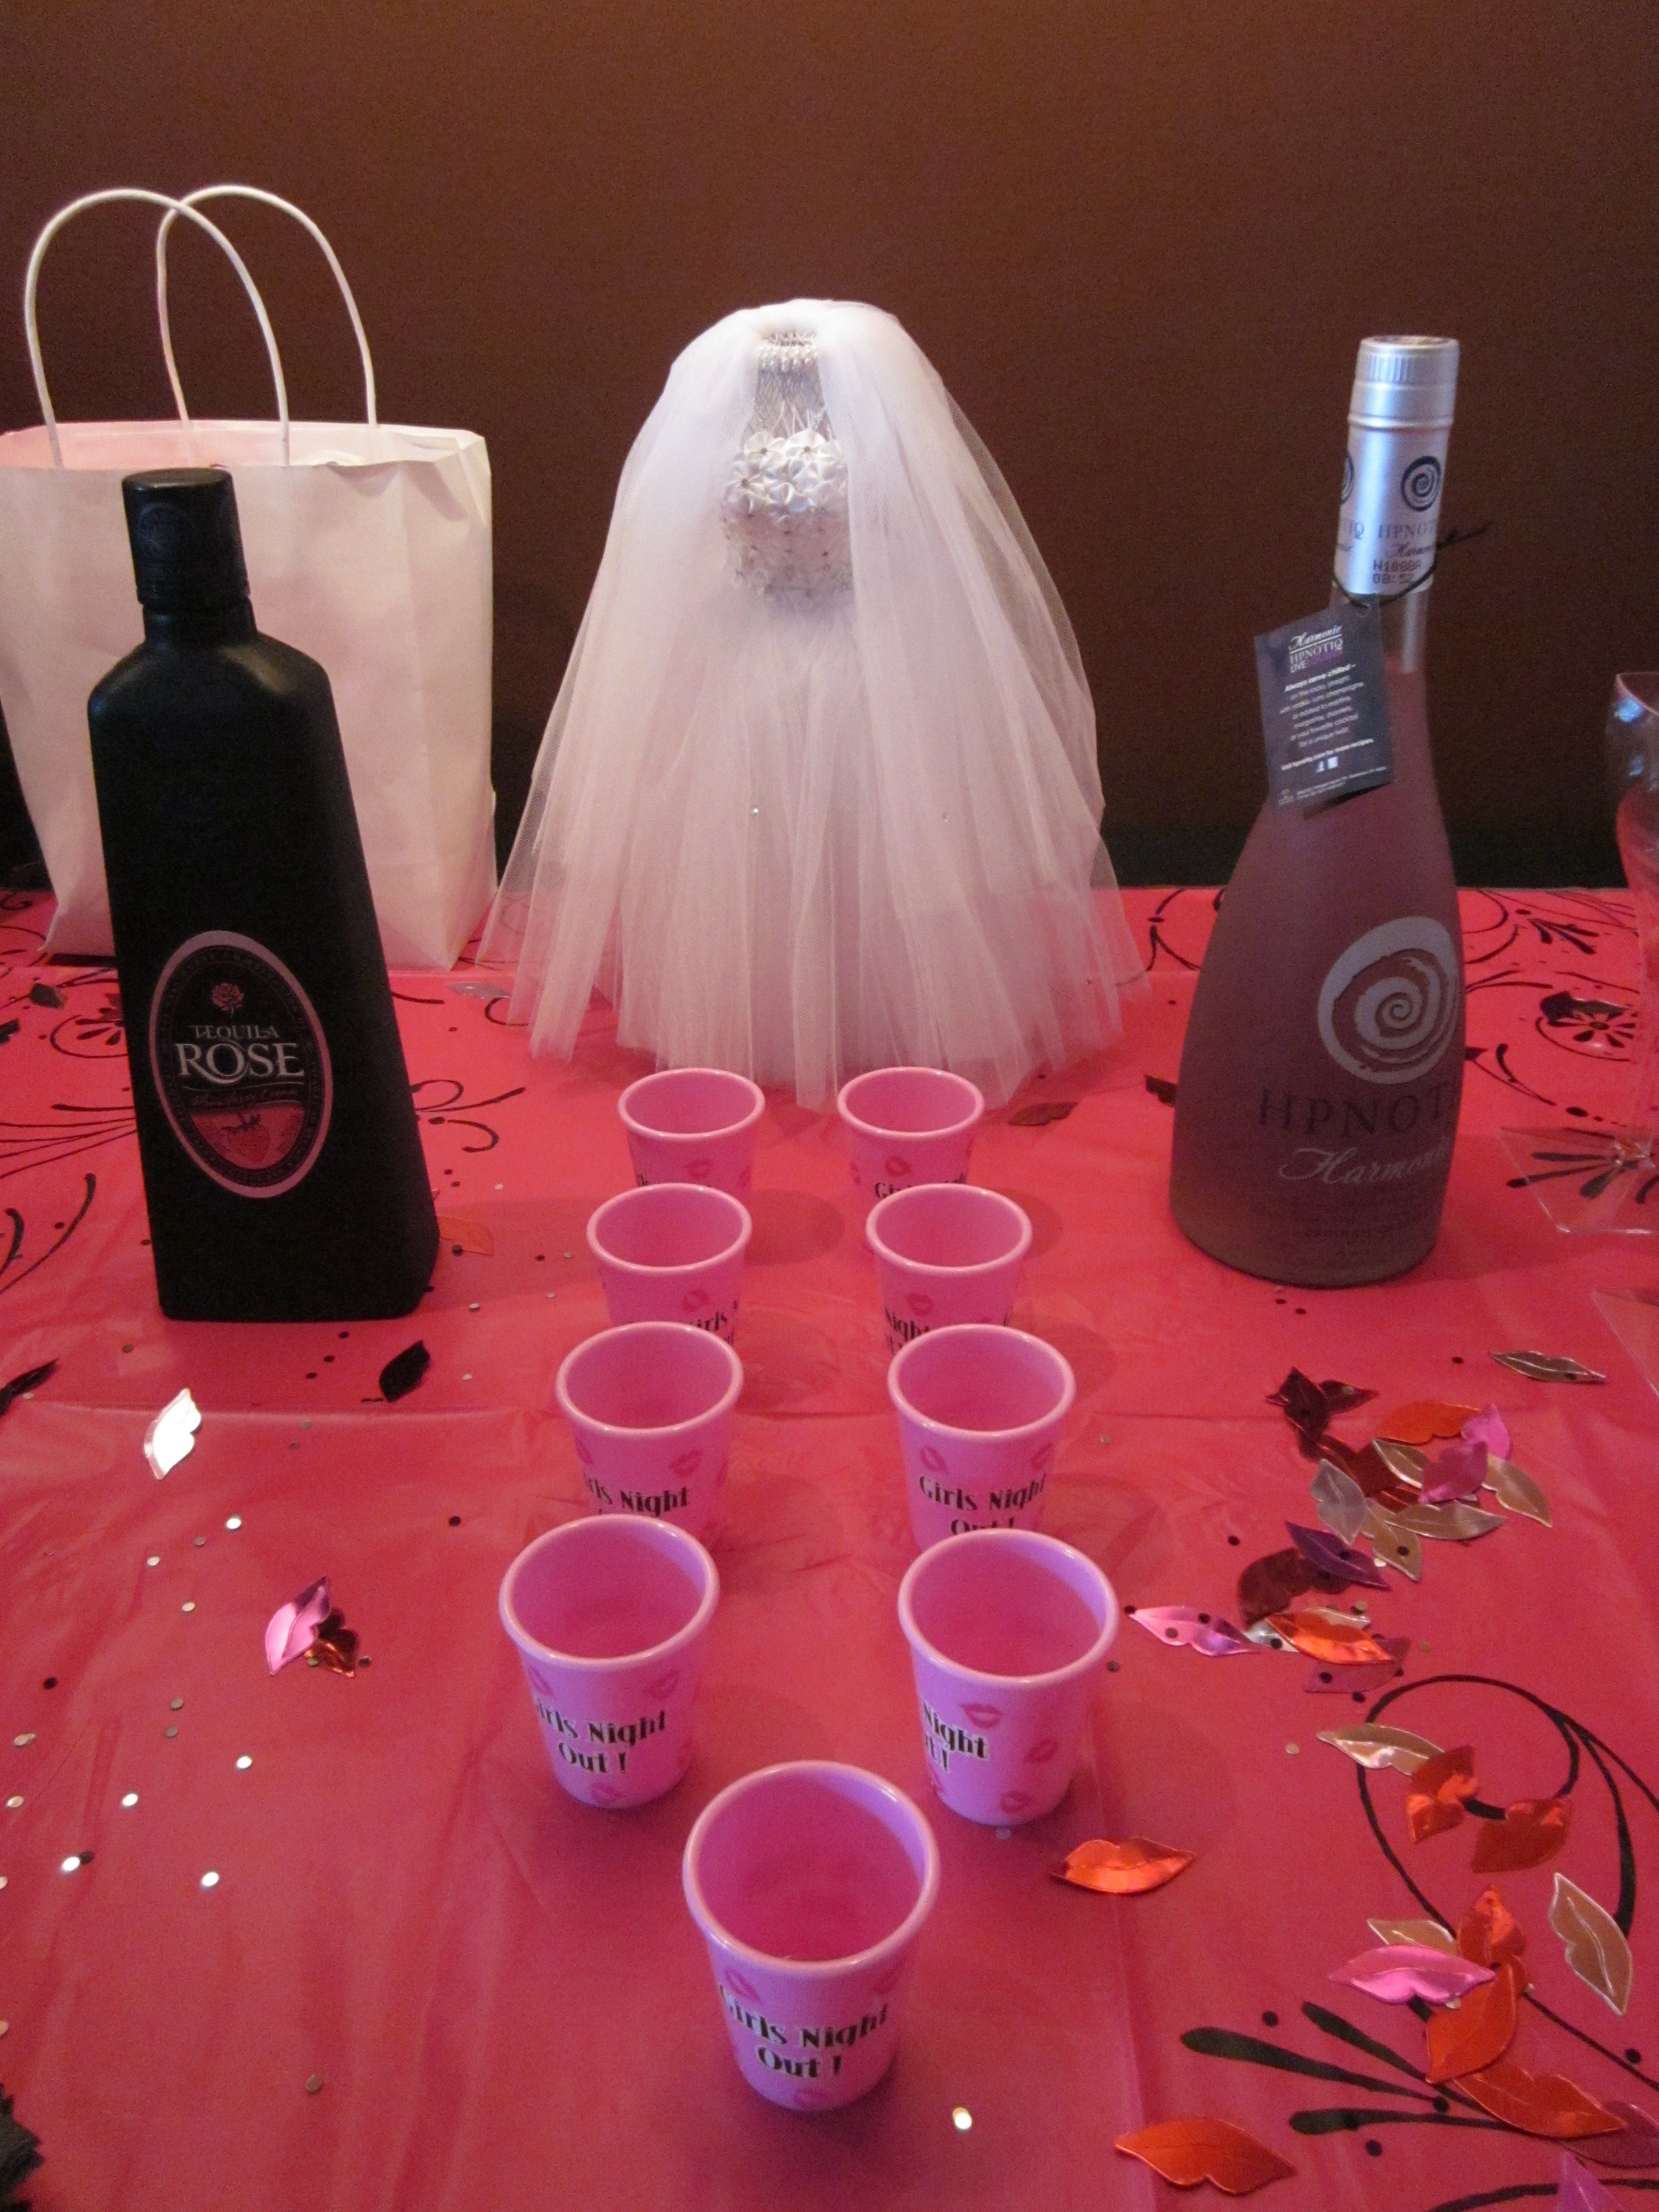 Pin By Soiree De Mar On Re Bachelorette Party Naughty Night Homemade Drinks Party City Bridal Shower